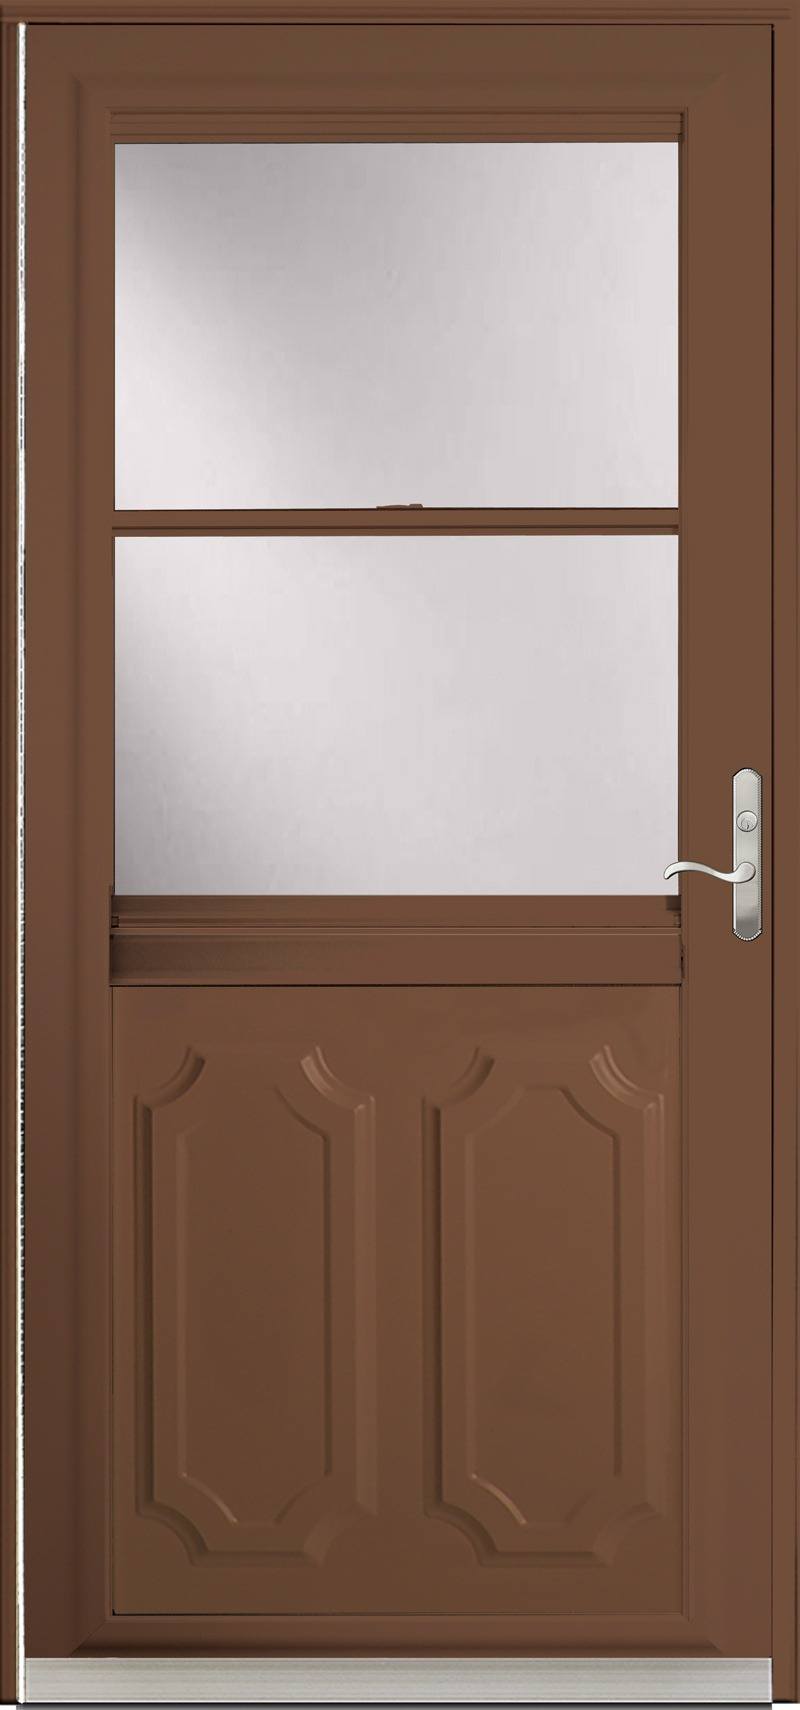 A stained wood door with glass in the upper half